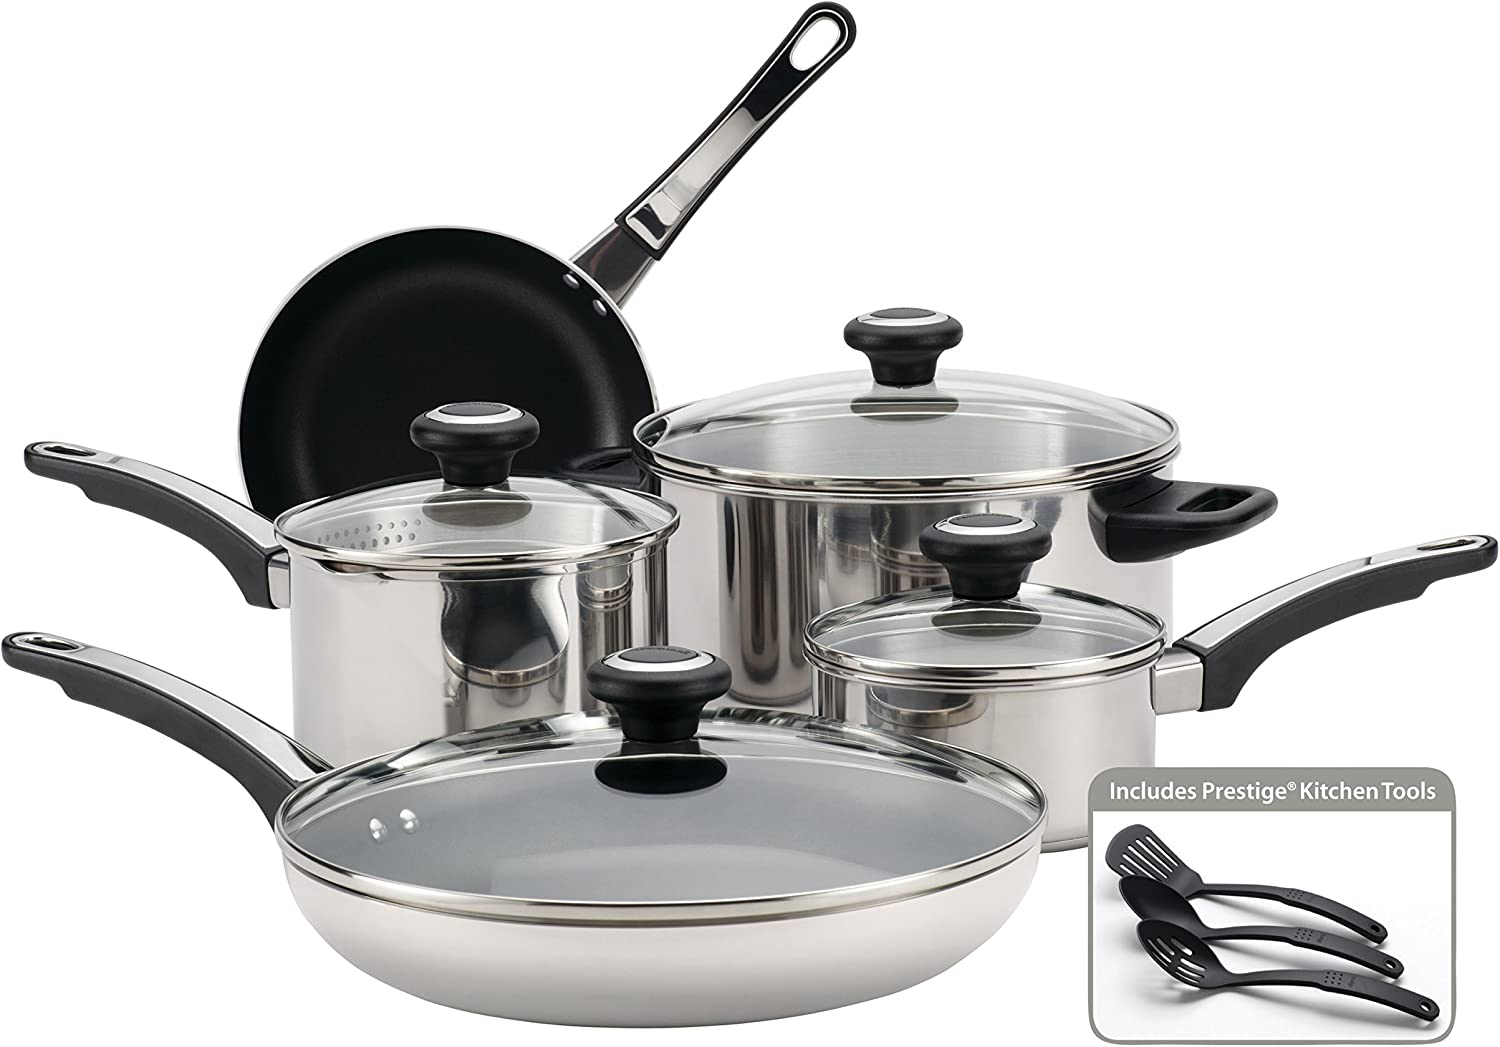 Farberware High Performance Stainless Steel Cookware Pots and Pans Set, 12 Piece